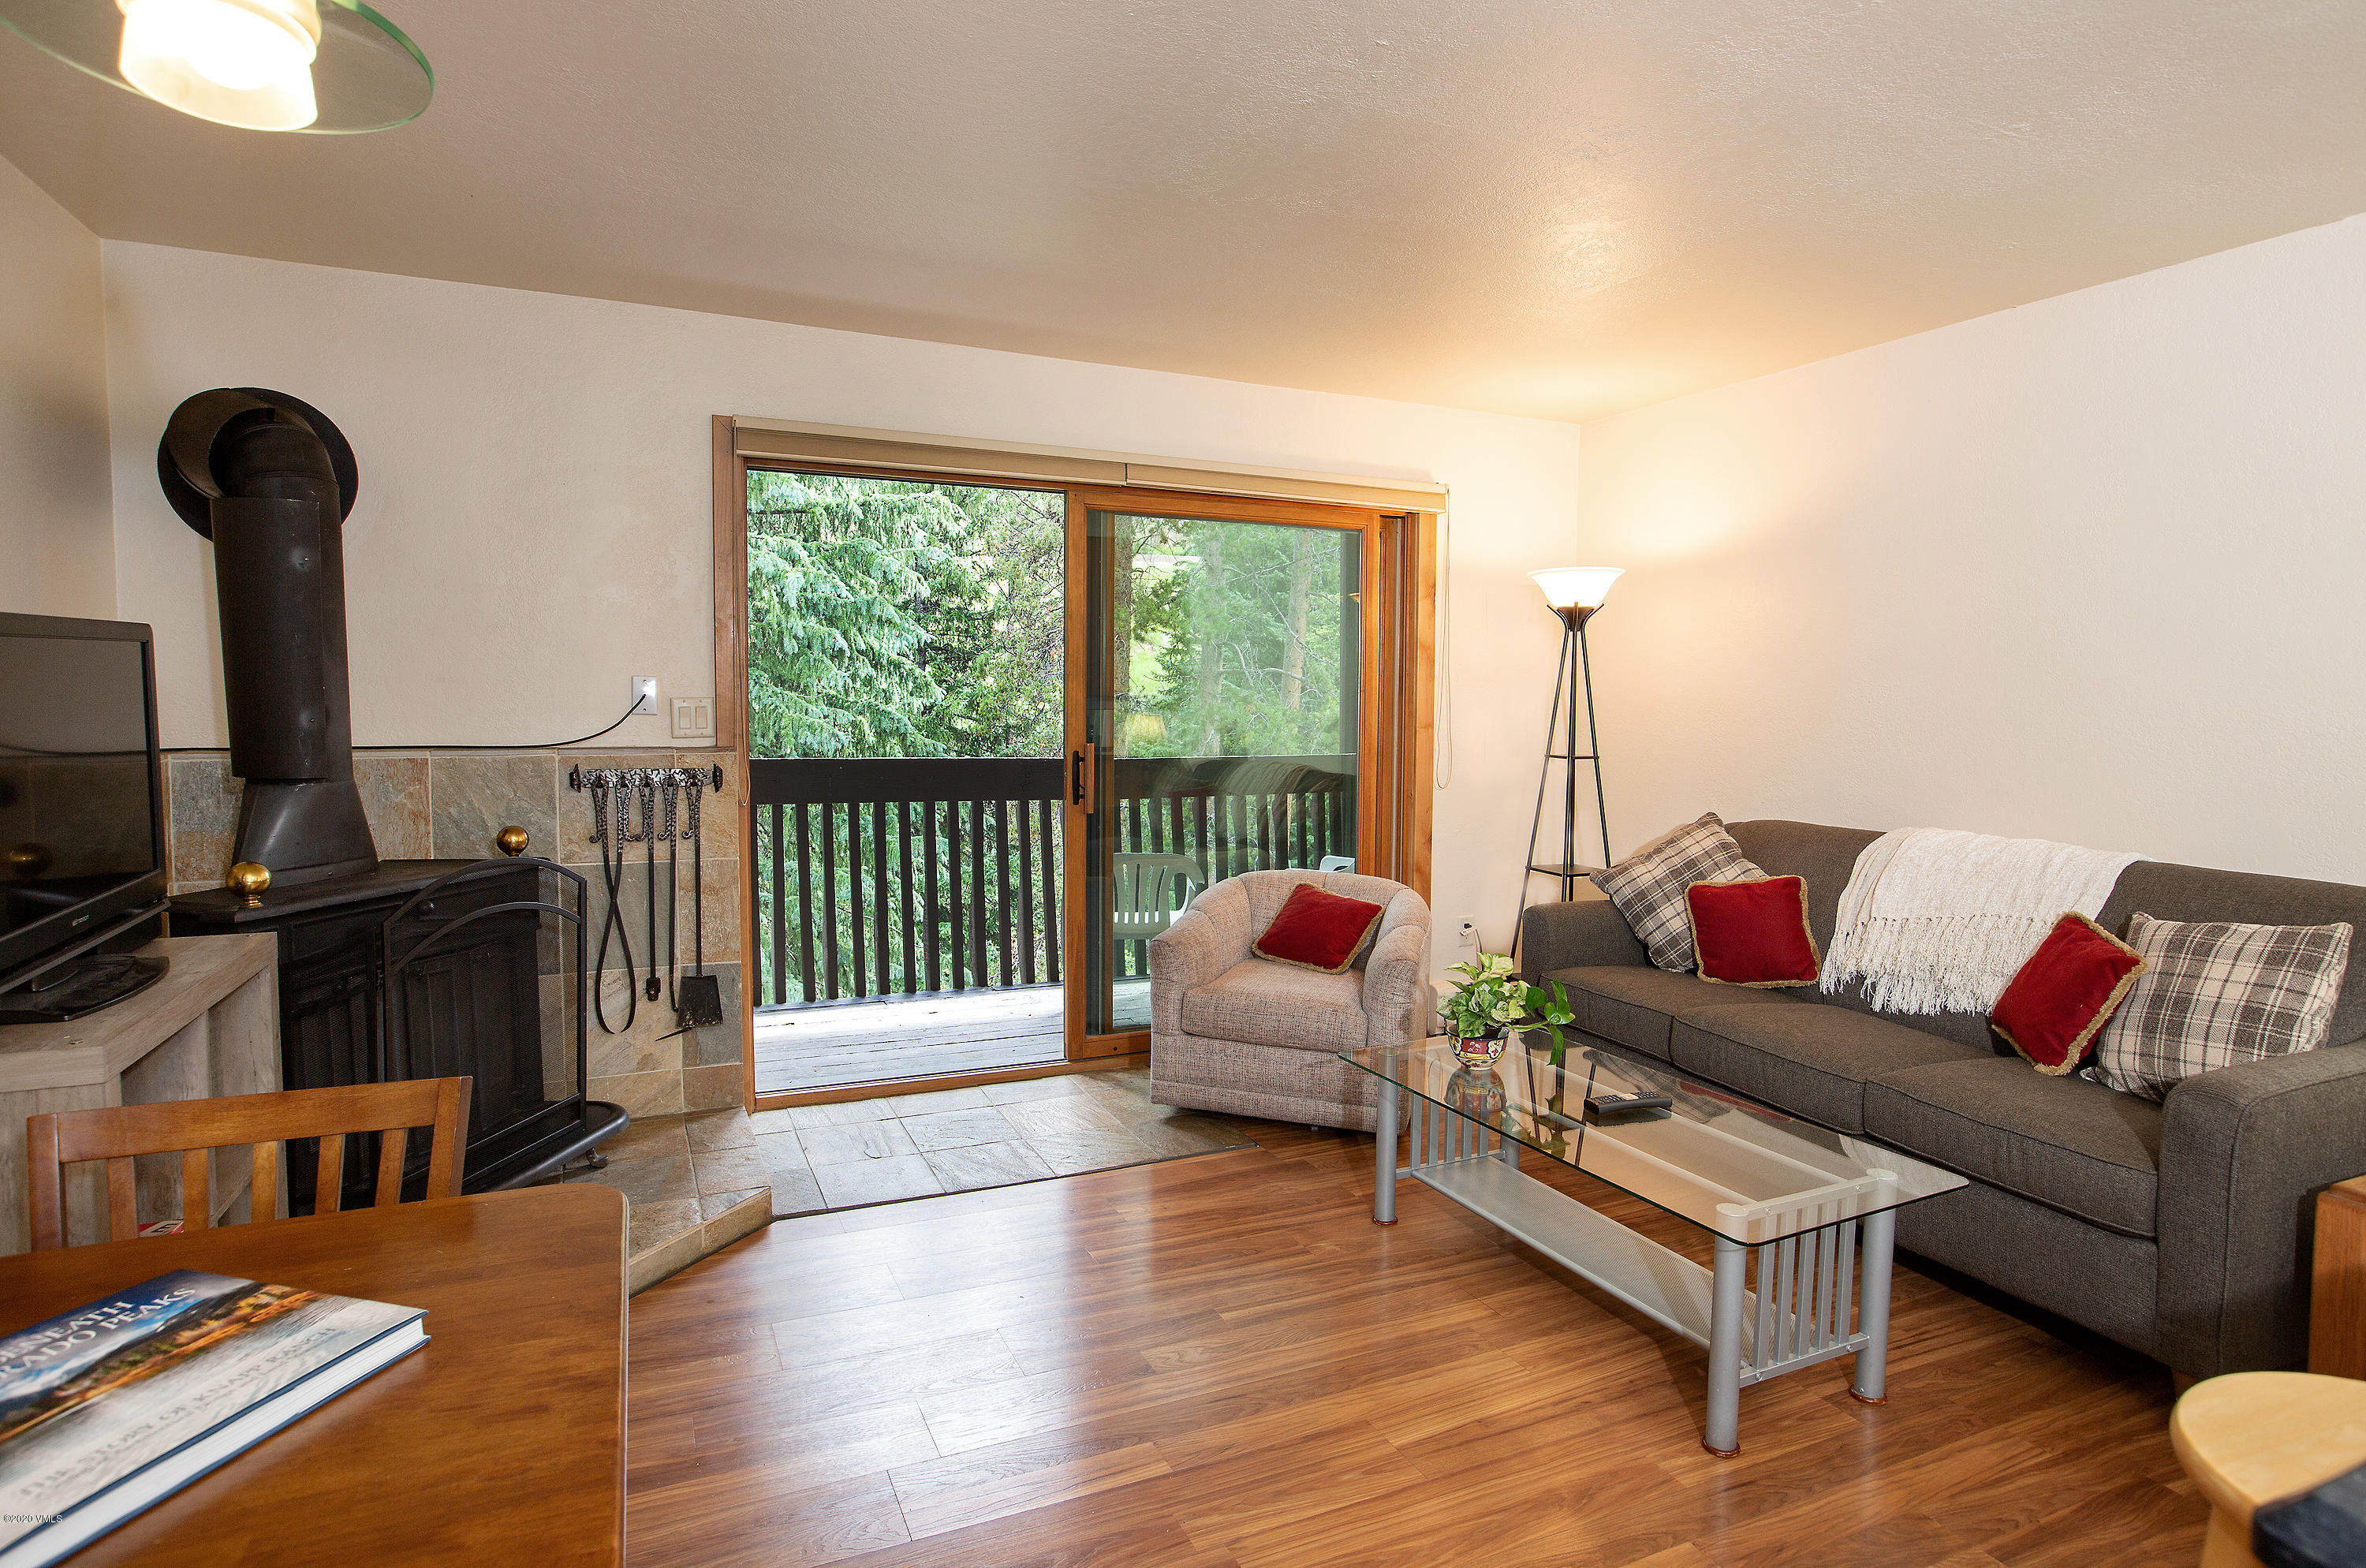 This sunny creek-side condominium is fresh and updated. New paint, wood floors, wonderful cabinets, and wood work throughout. Some nice furniture and easy to rent. Ready to show anytime.